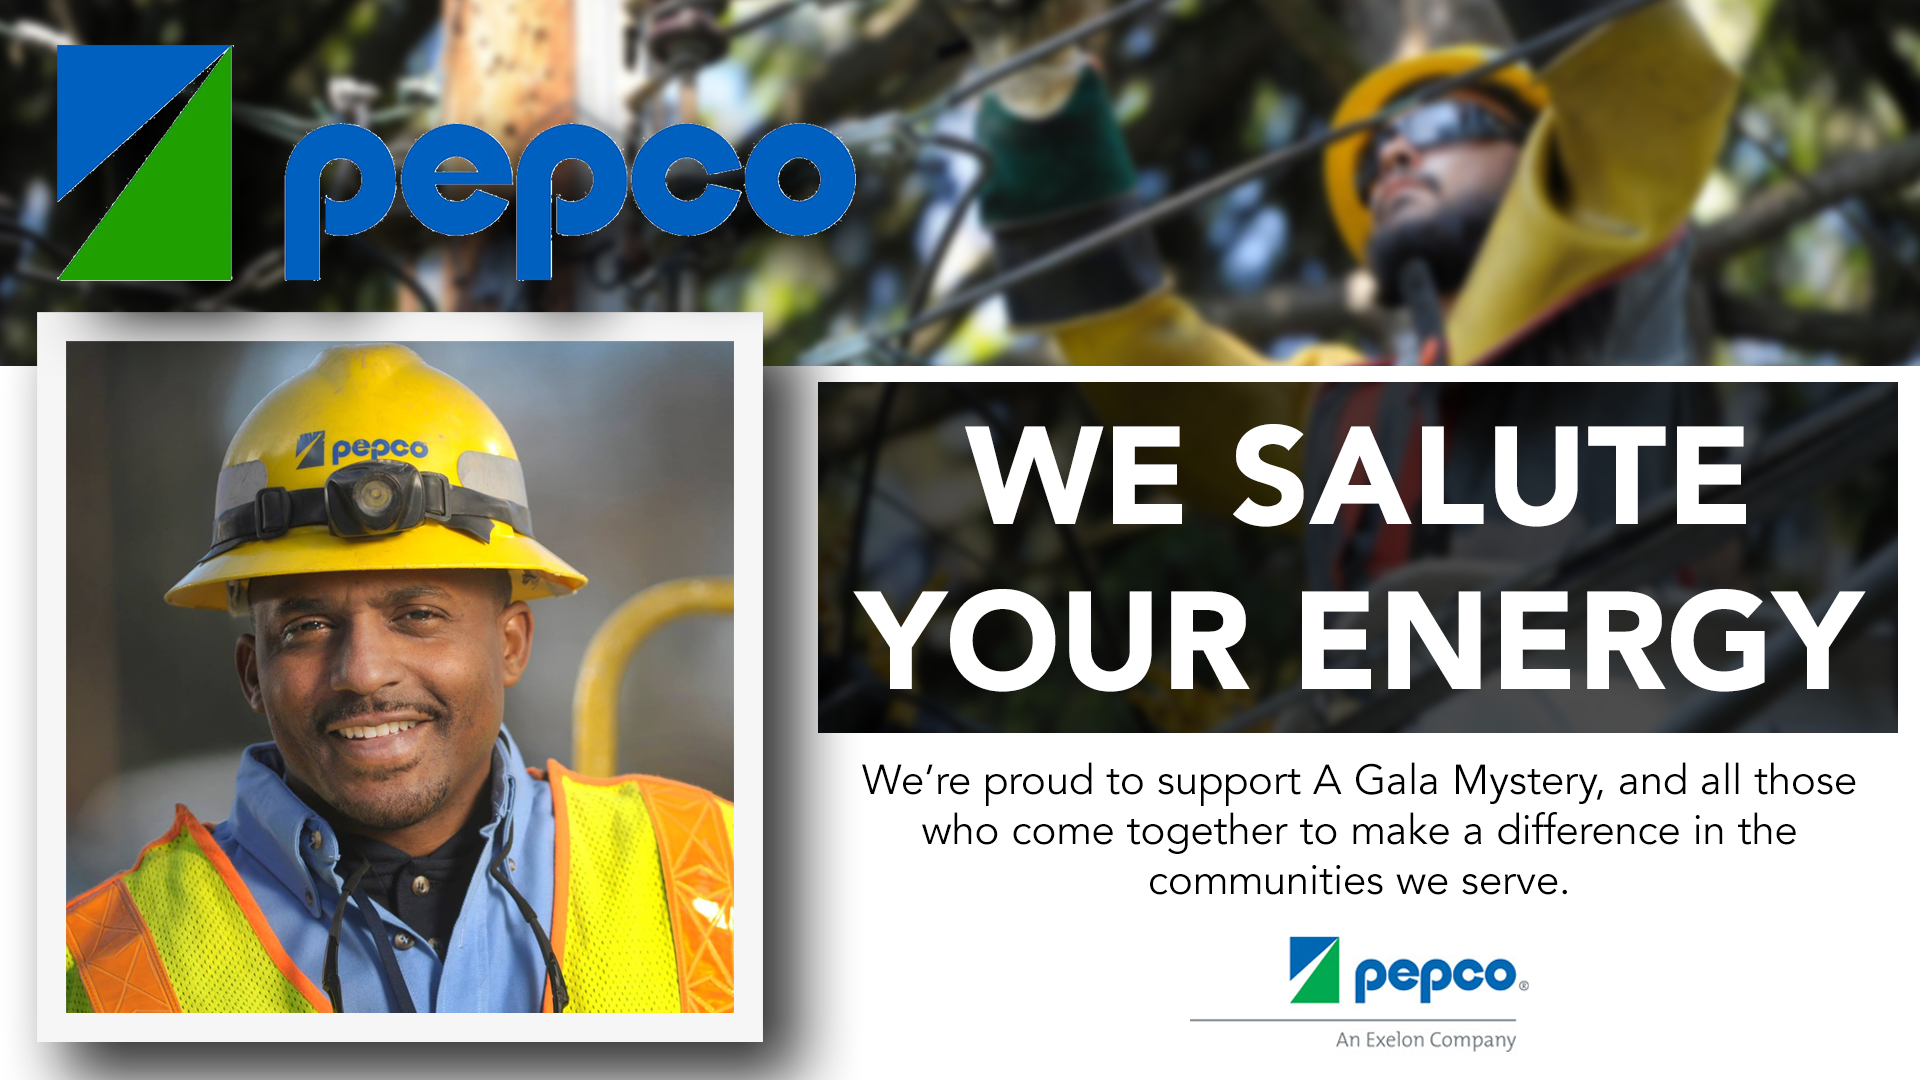 4 Pepco.png